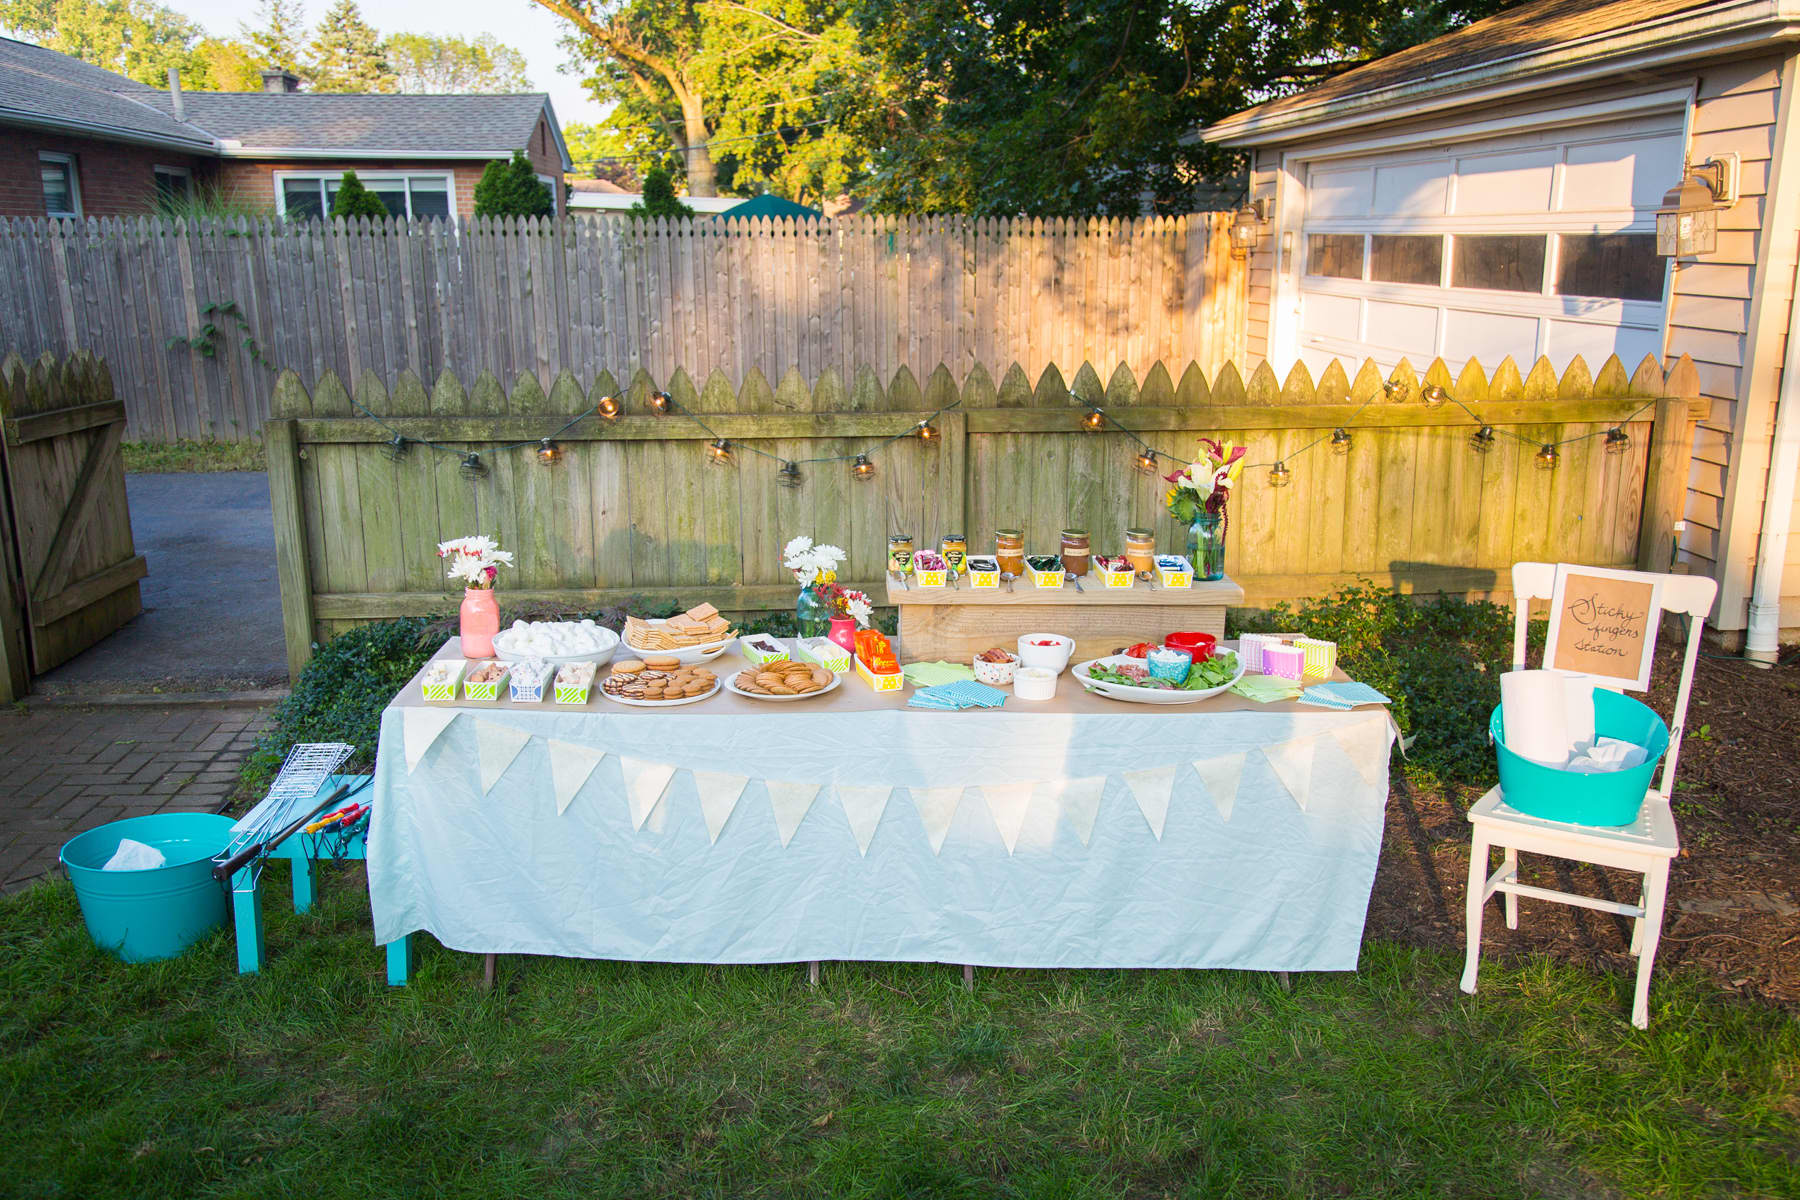 A Backyard S'mores Party: gallery image 14